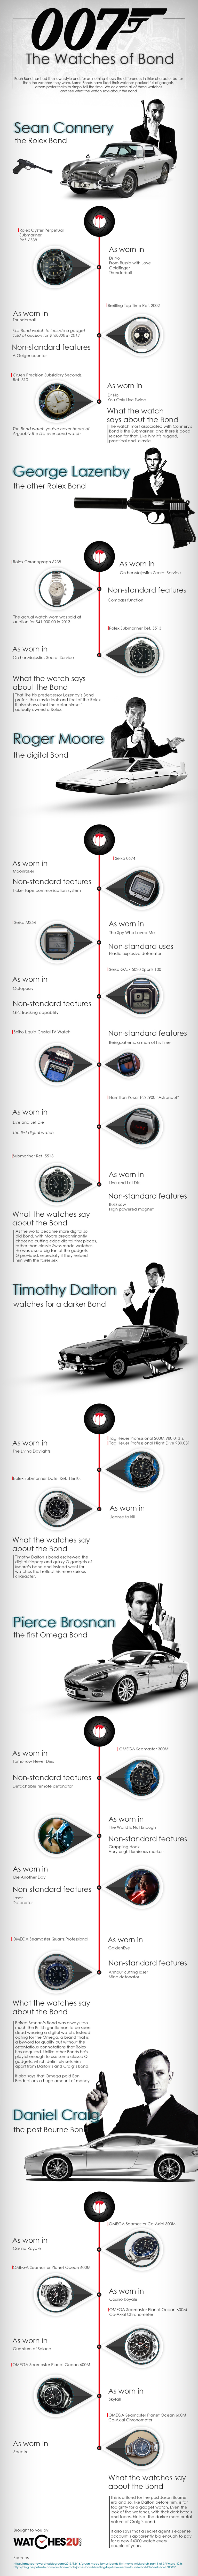 James Bond Watches